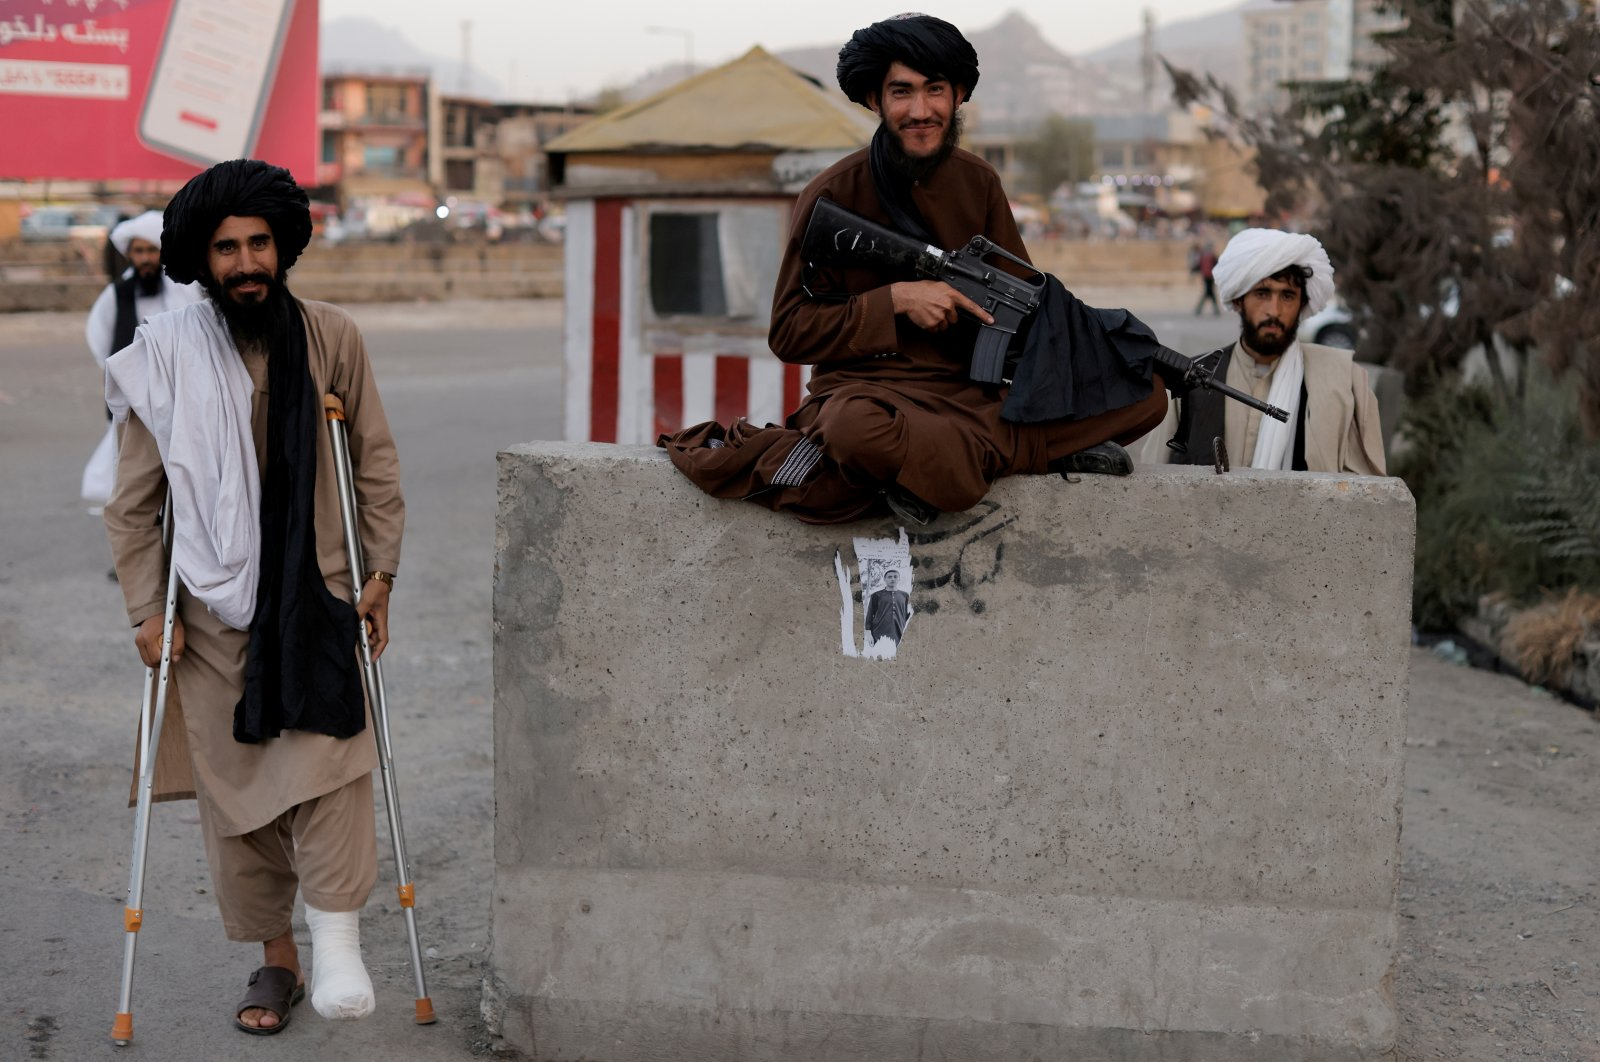 Taliban fighter Mira Jan Himmat, 30, and Rafiullah, 26, from Helmand province smile as they stand guard in a checkpoint in Kabul, Afghanistan, Oct. 5, 2021. (Reuters File Photo)